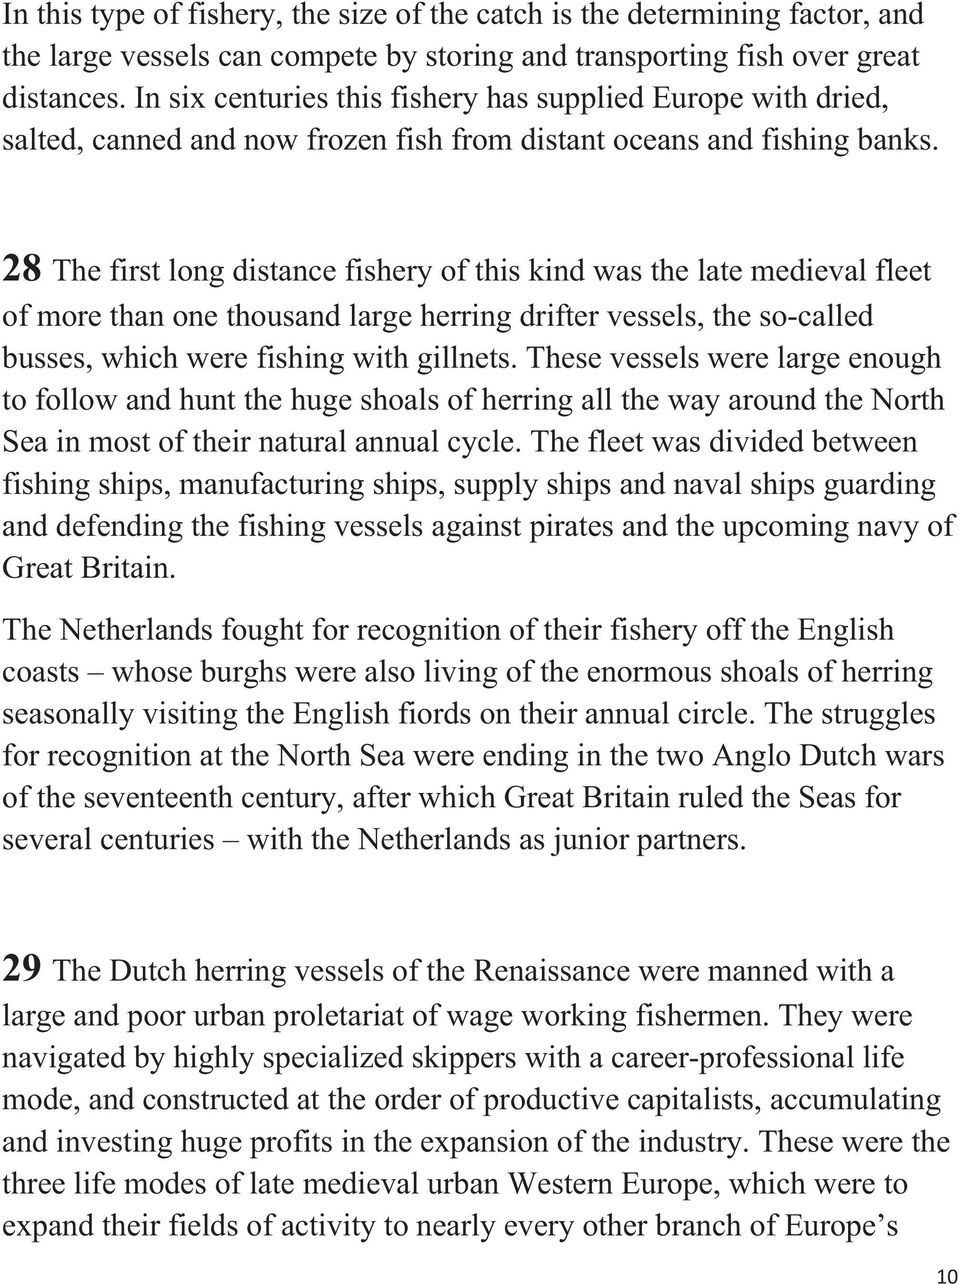 28 The first long distance fishery of this kind was the late medieval fleet of more than one thousand large herring drifter vessels, the so-called busses, which were fishing with gillnets.